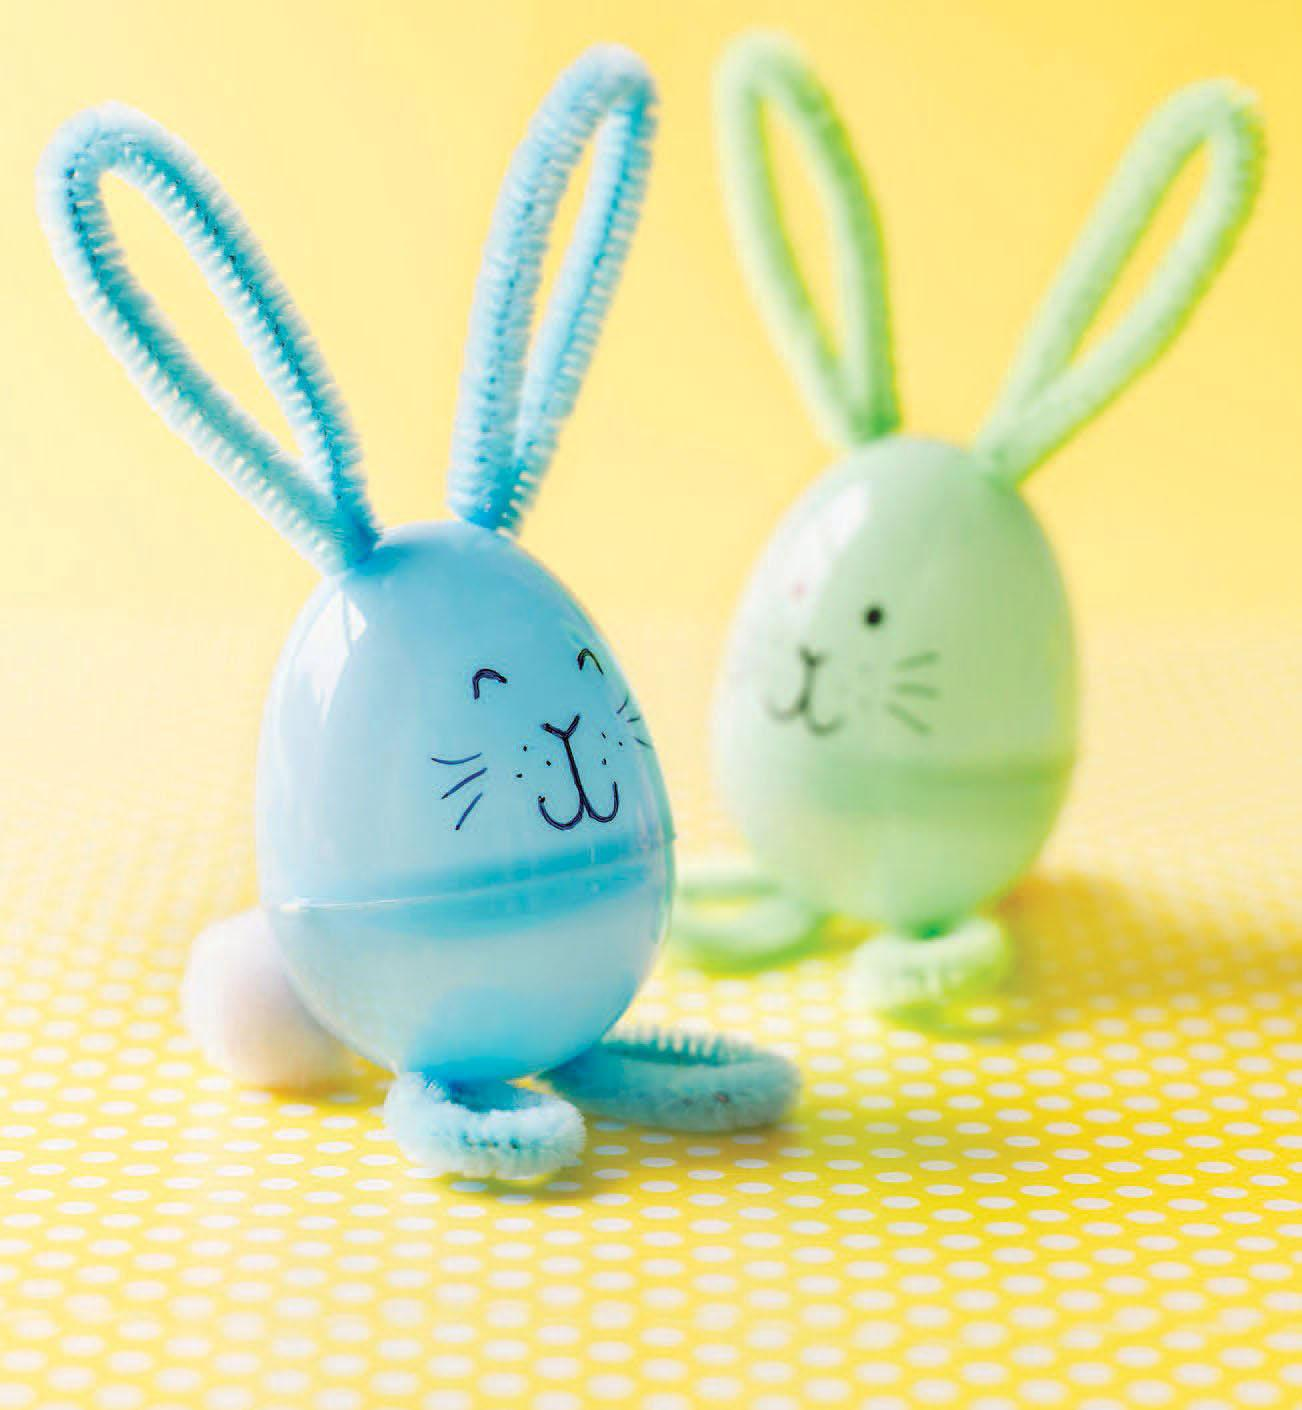 ​With Easter fast approaching, start making awesome crafts with your family (Courtesy of mctcampus.com).